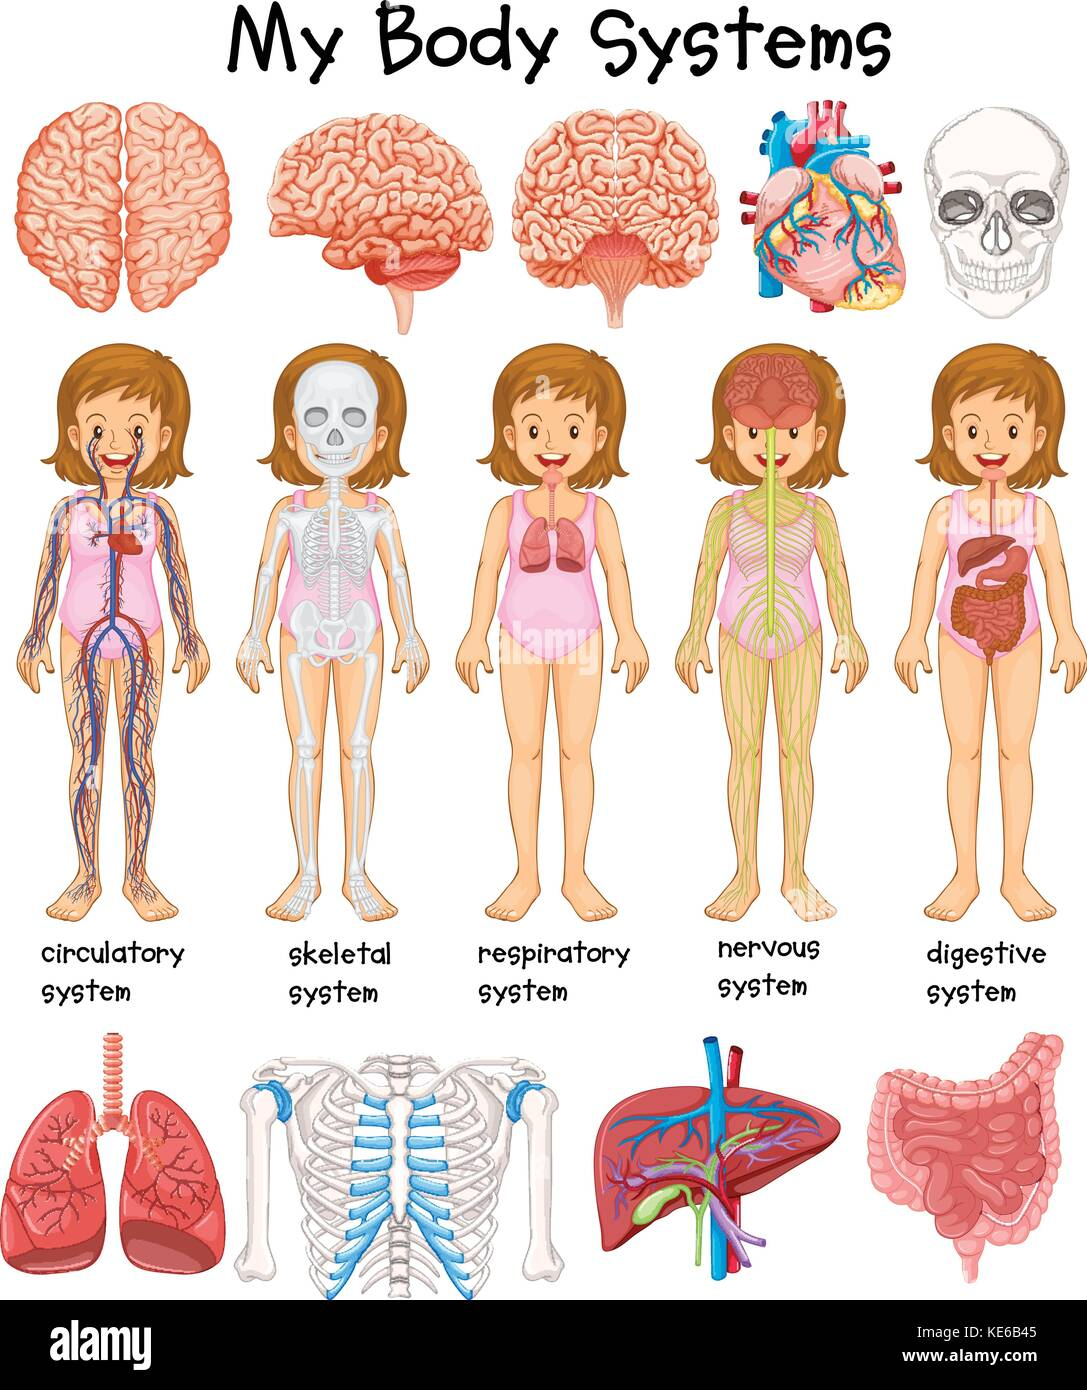 Human body systems diagram illustration stock vector art human body systems diagram illustration pooptronica Image collections